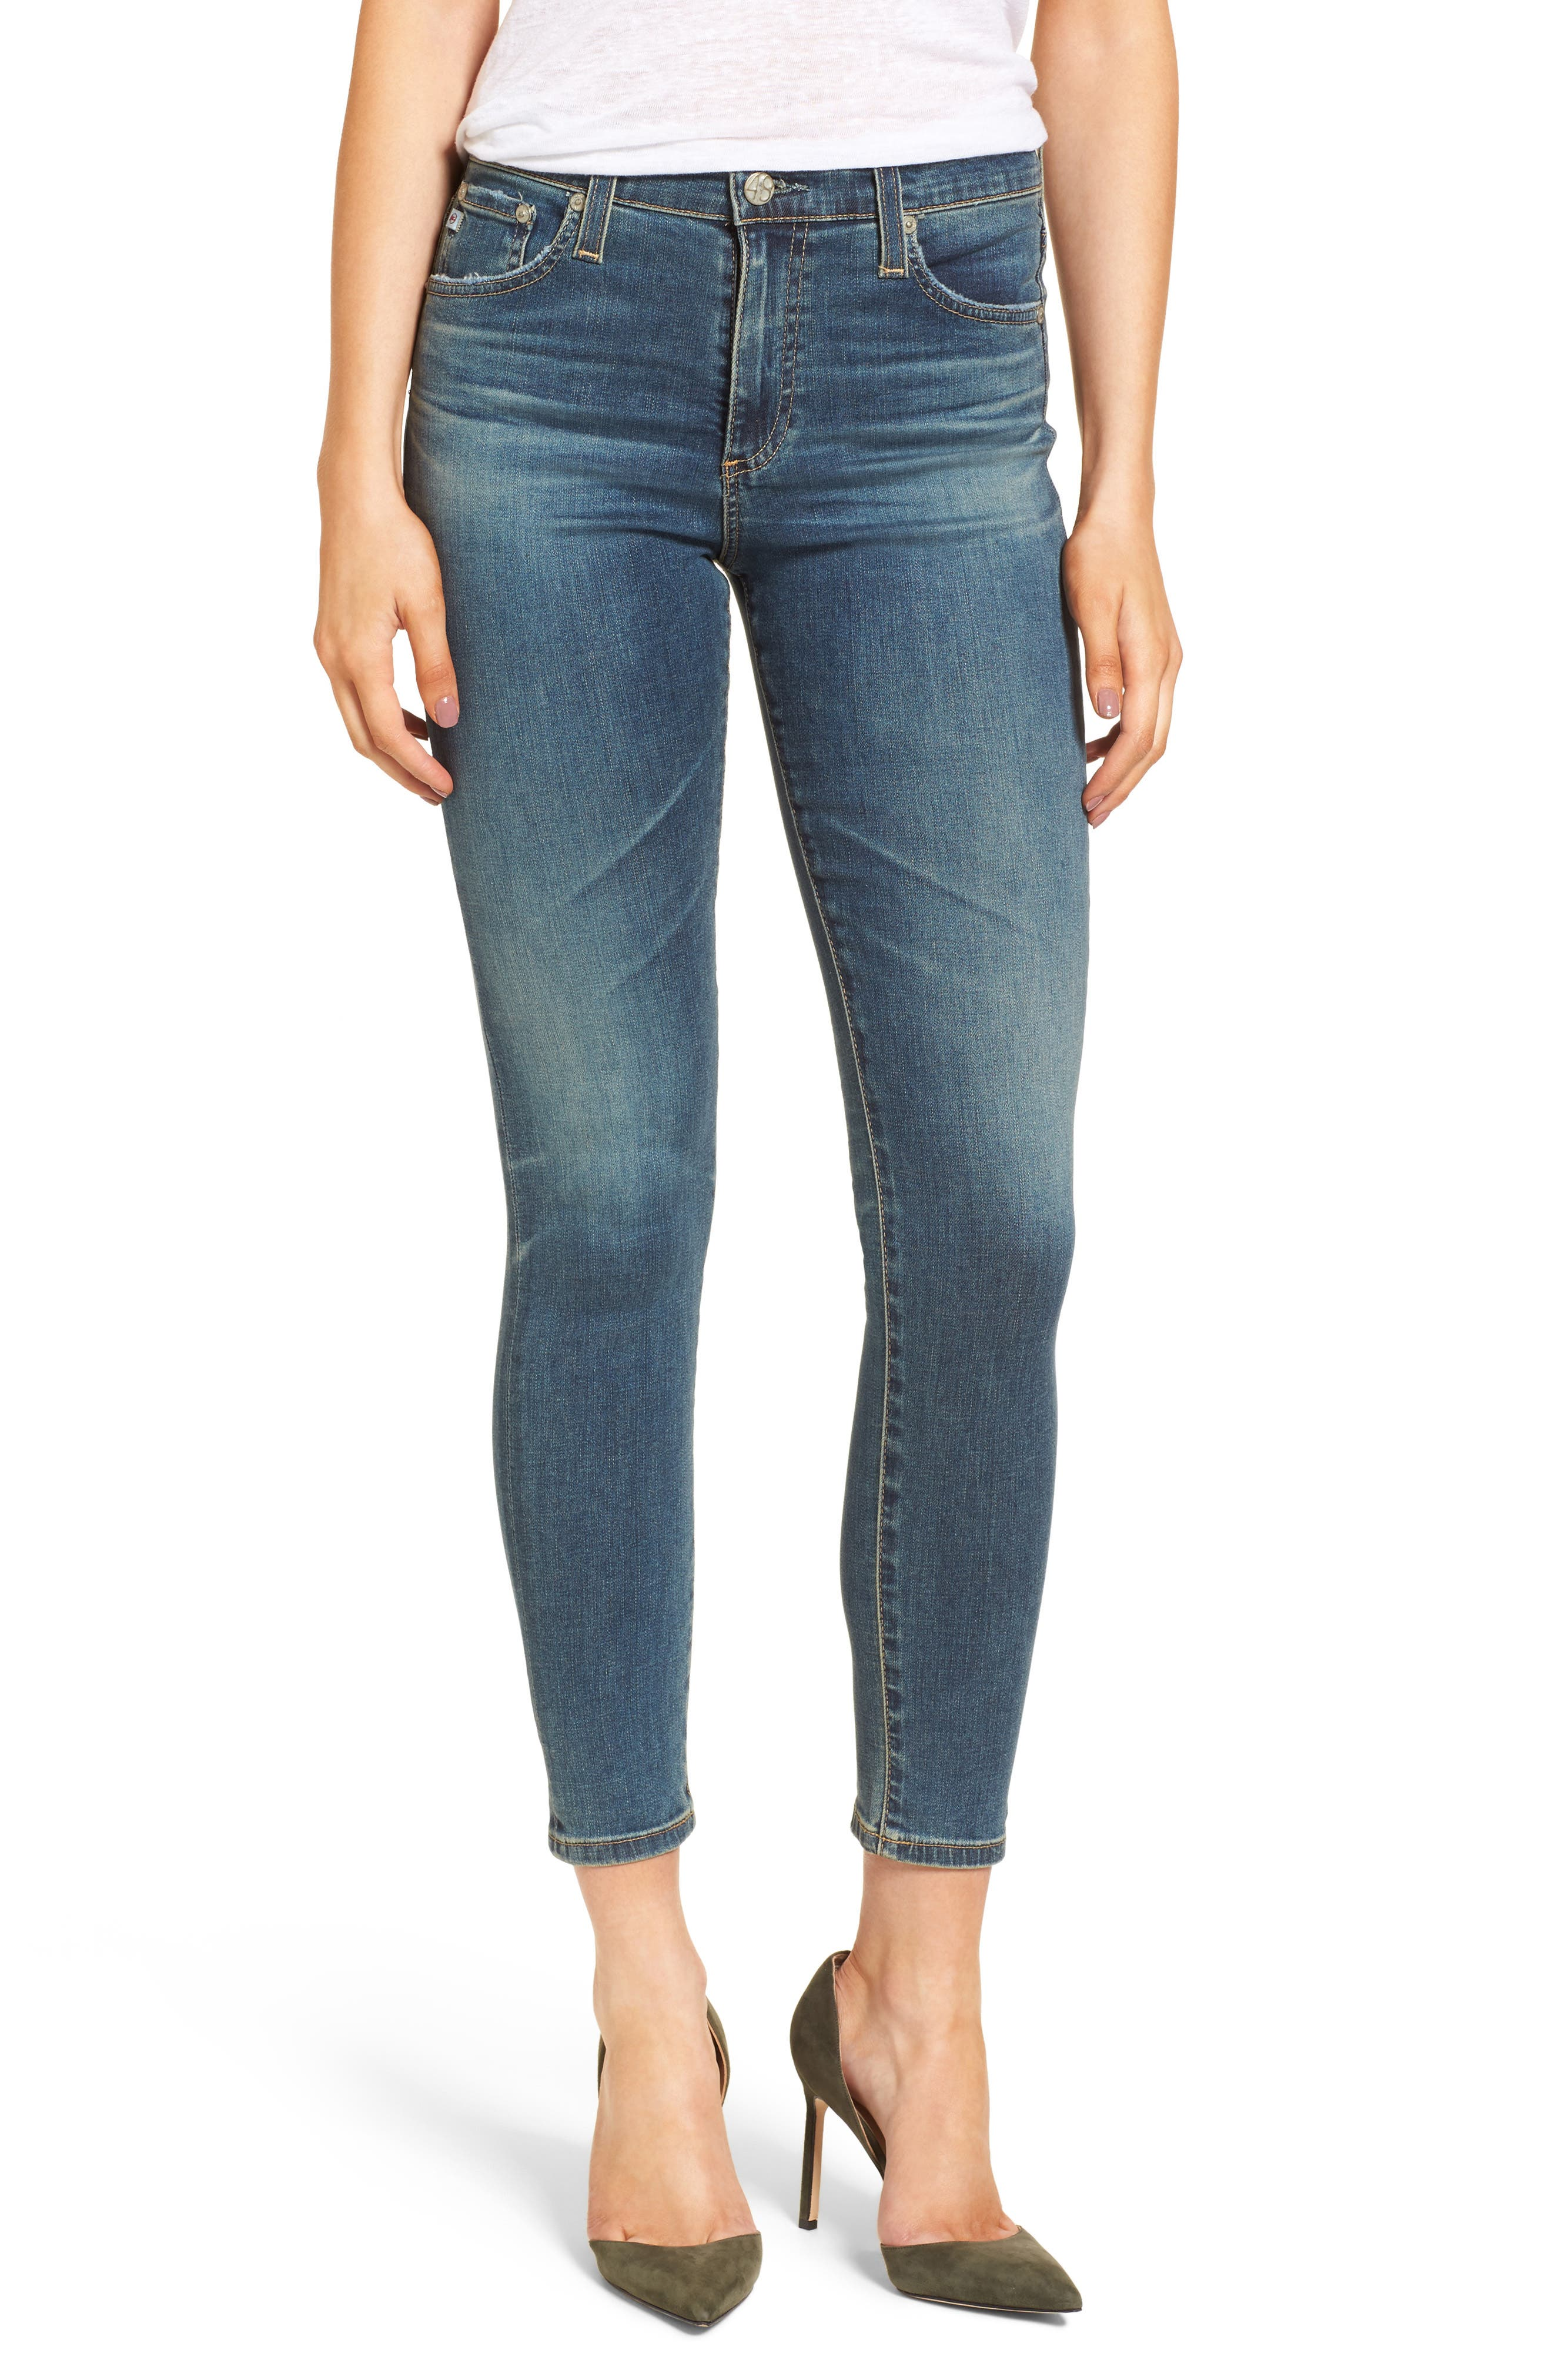 Alternate Image 1 Selected - AG The Farrah High Waist Ankle Skinny Jeans (10 Years Brewed)